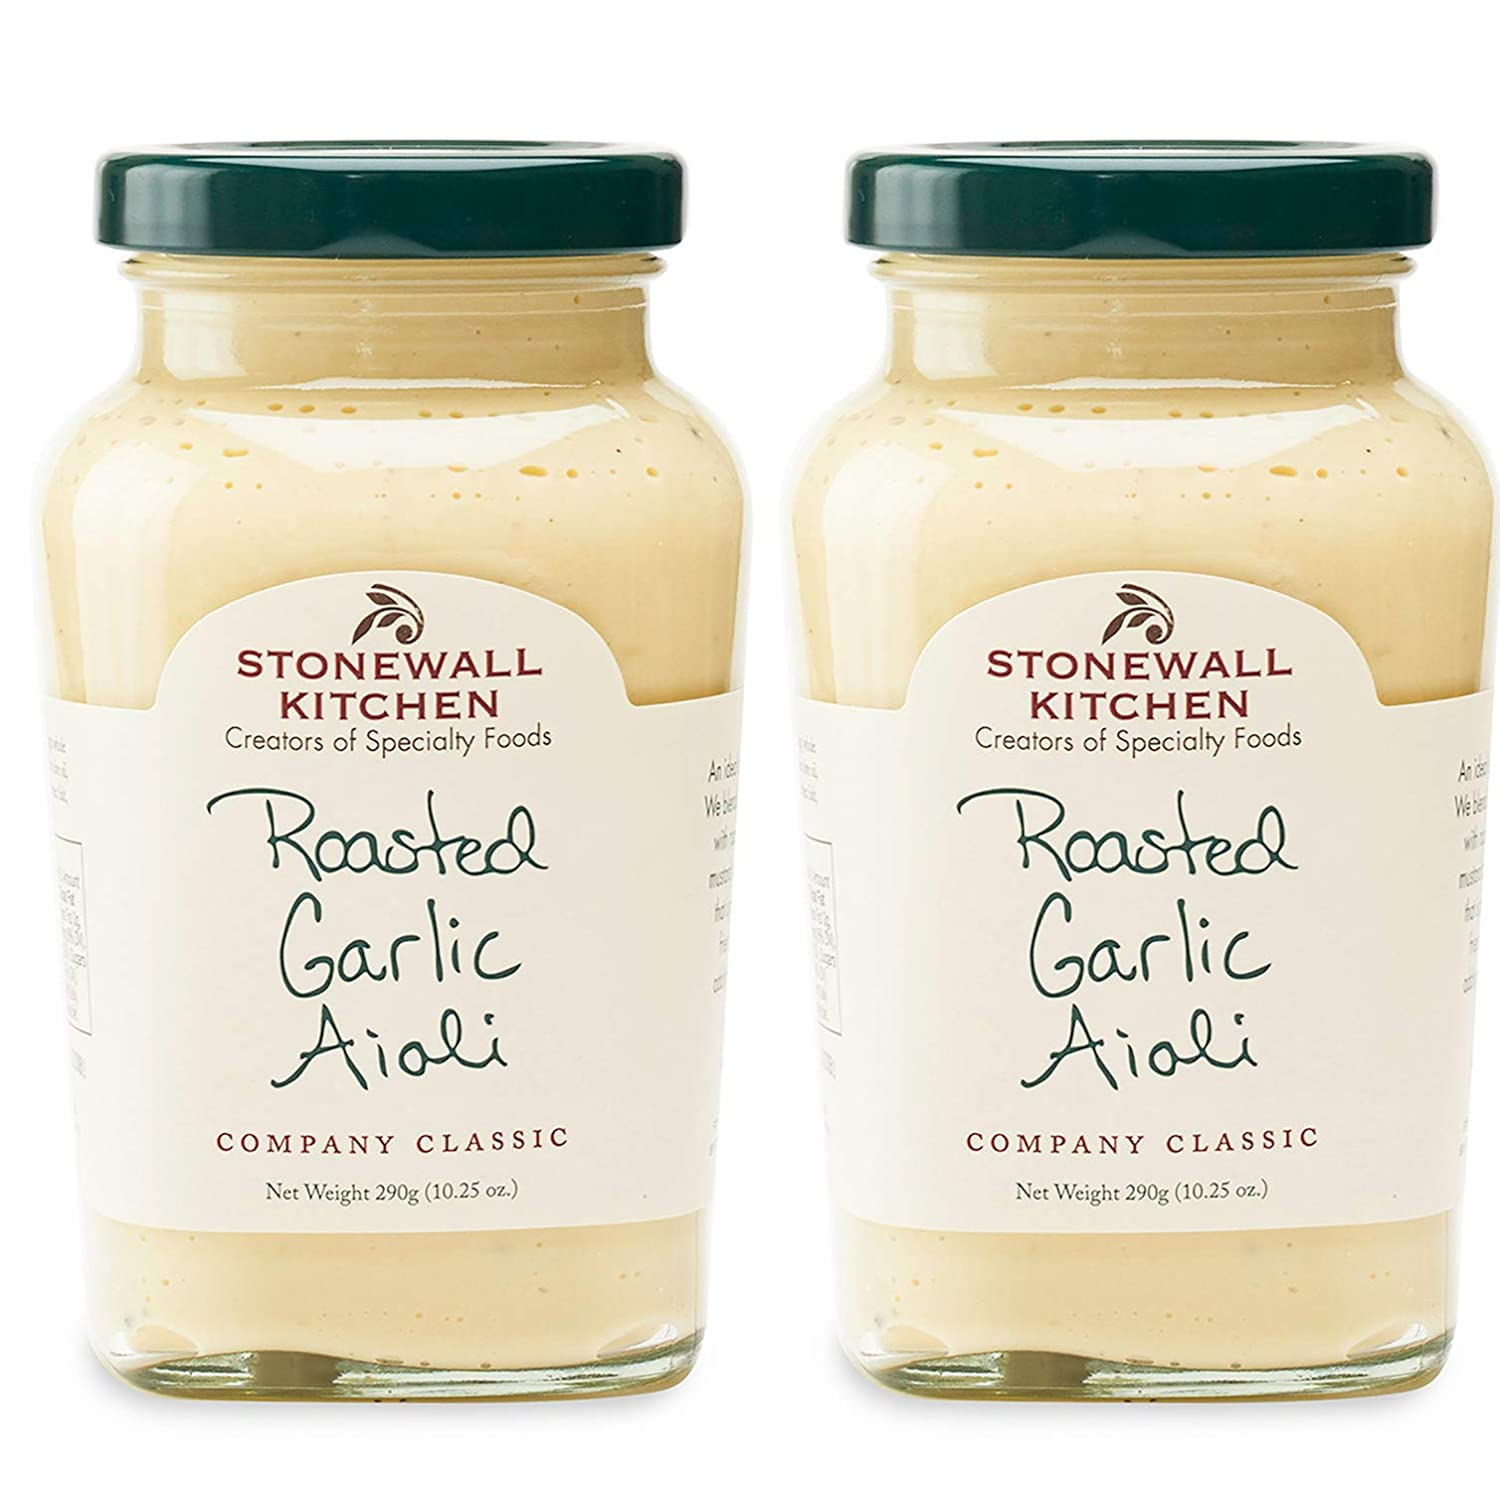 Stonewall Kitchen Roasted Garlic Aioli, 10.25 Ounce (Pack of 2)